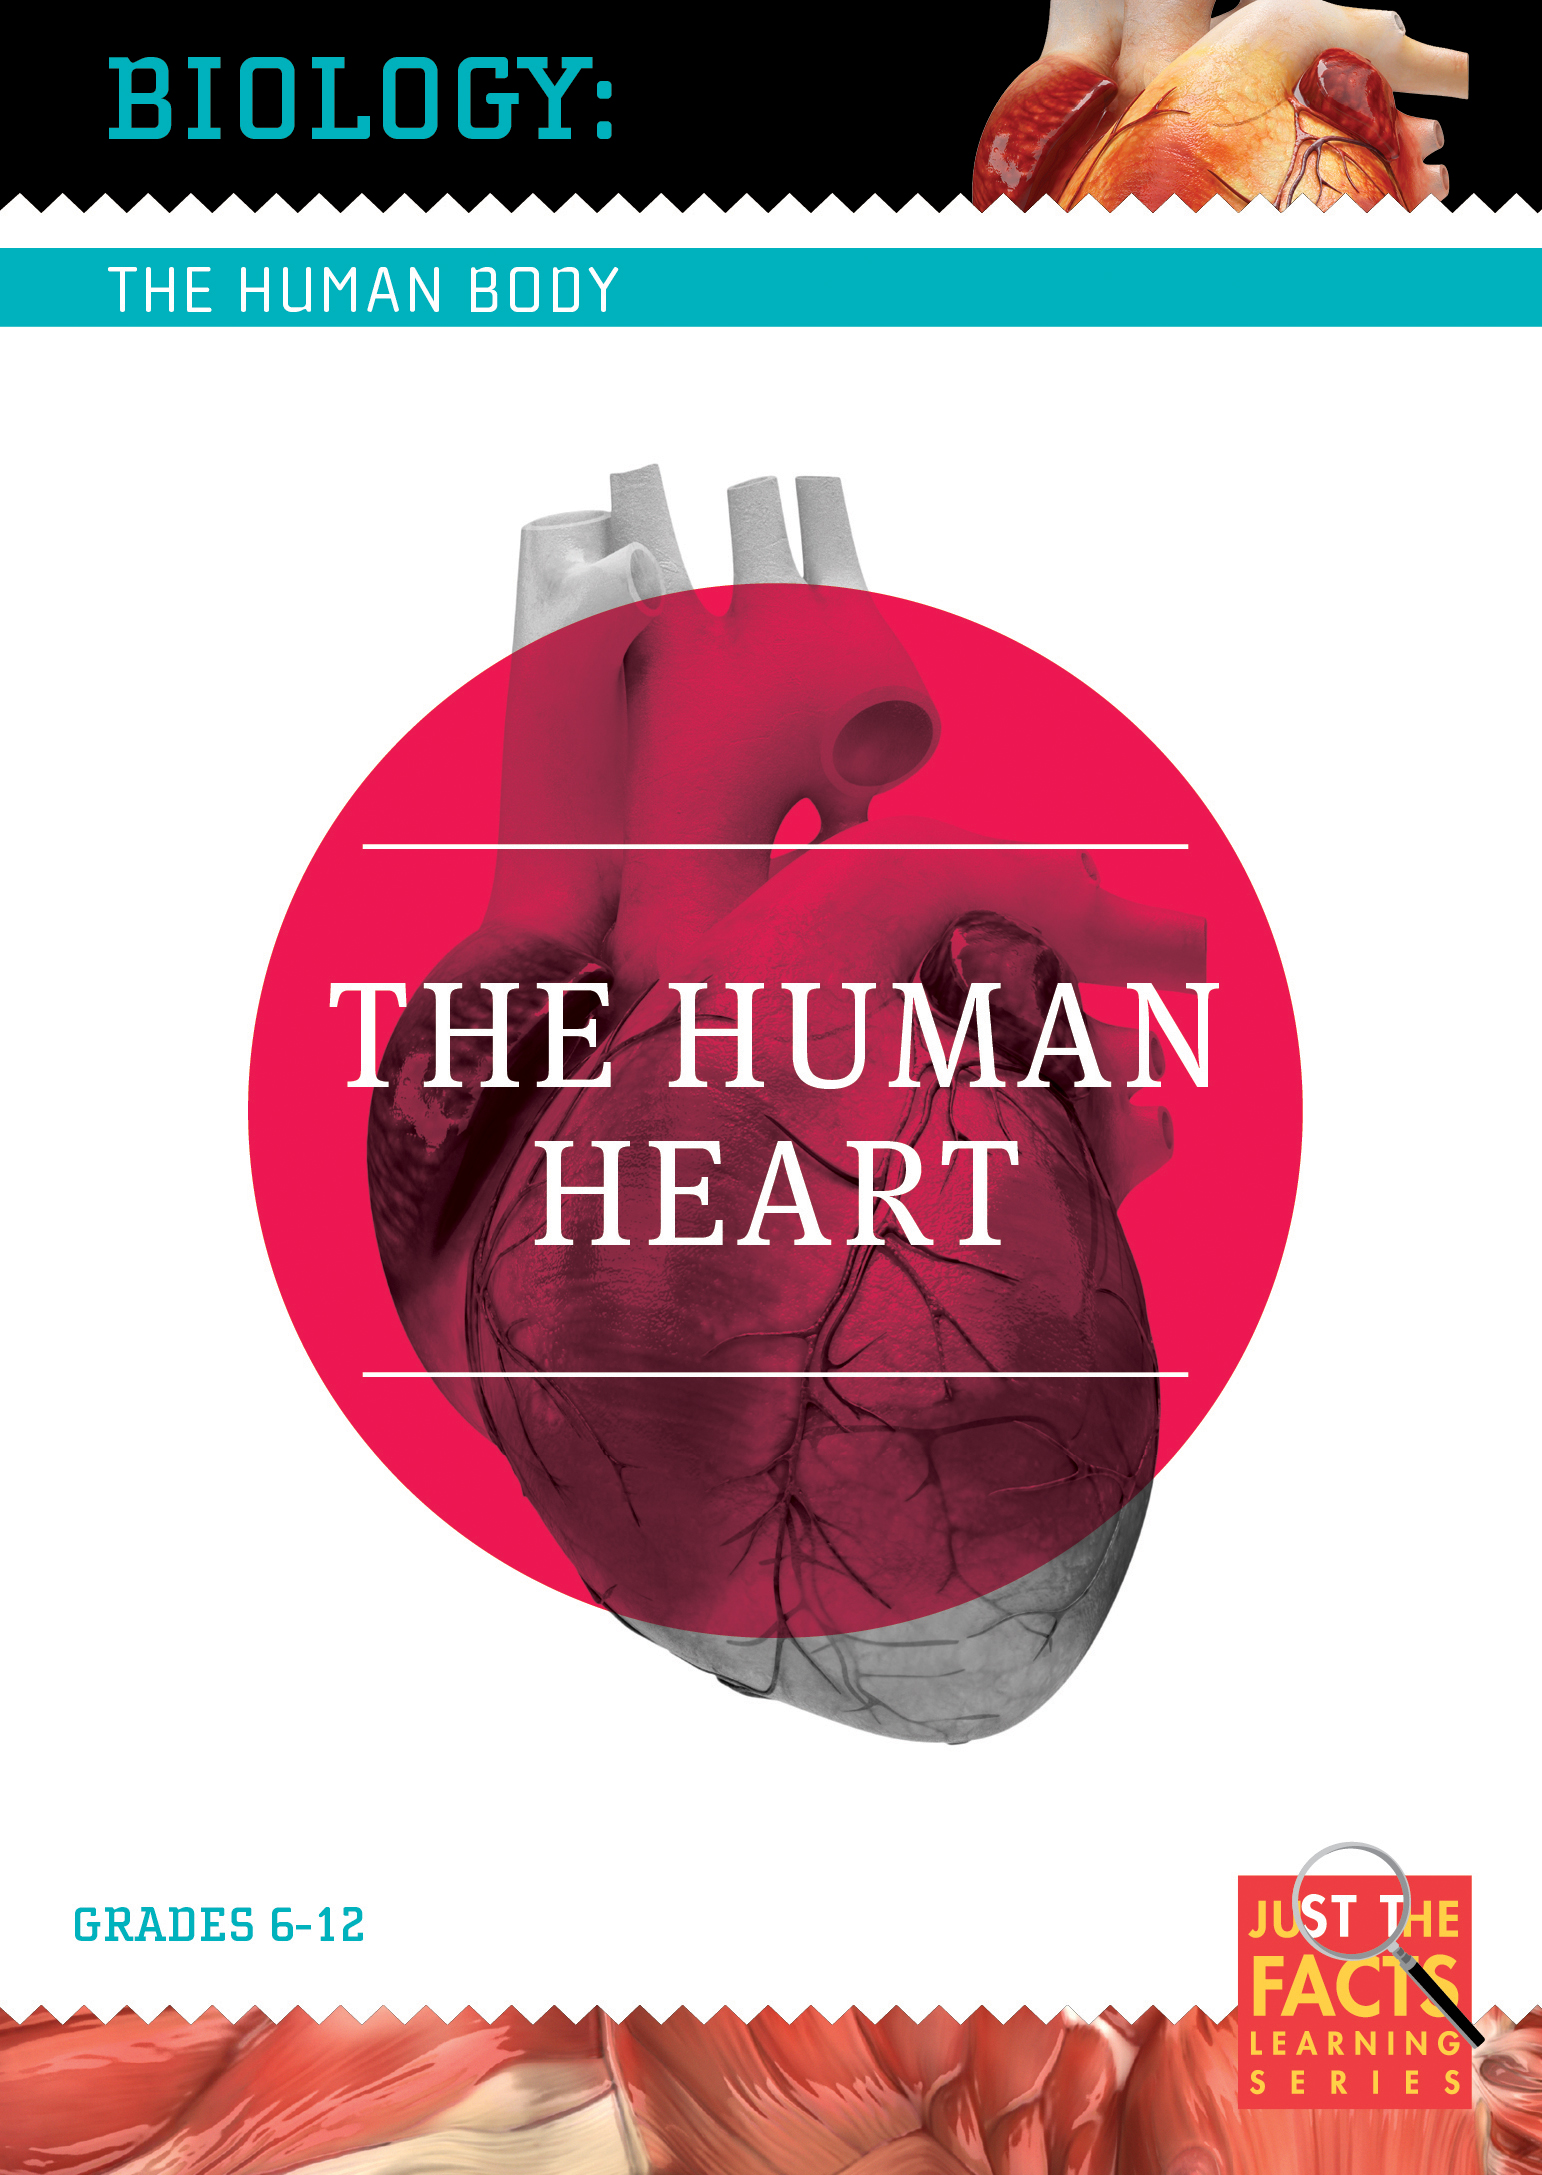 Biology of the Human Body: The Human Heart